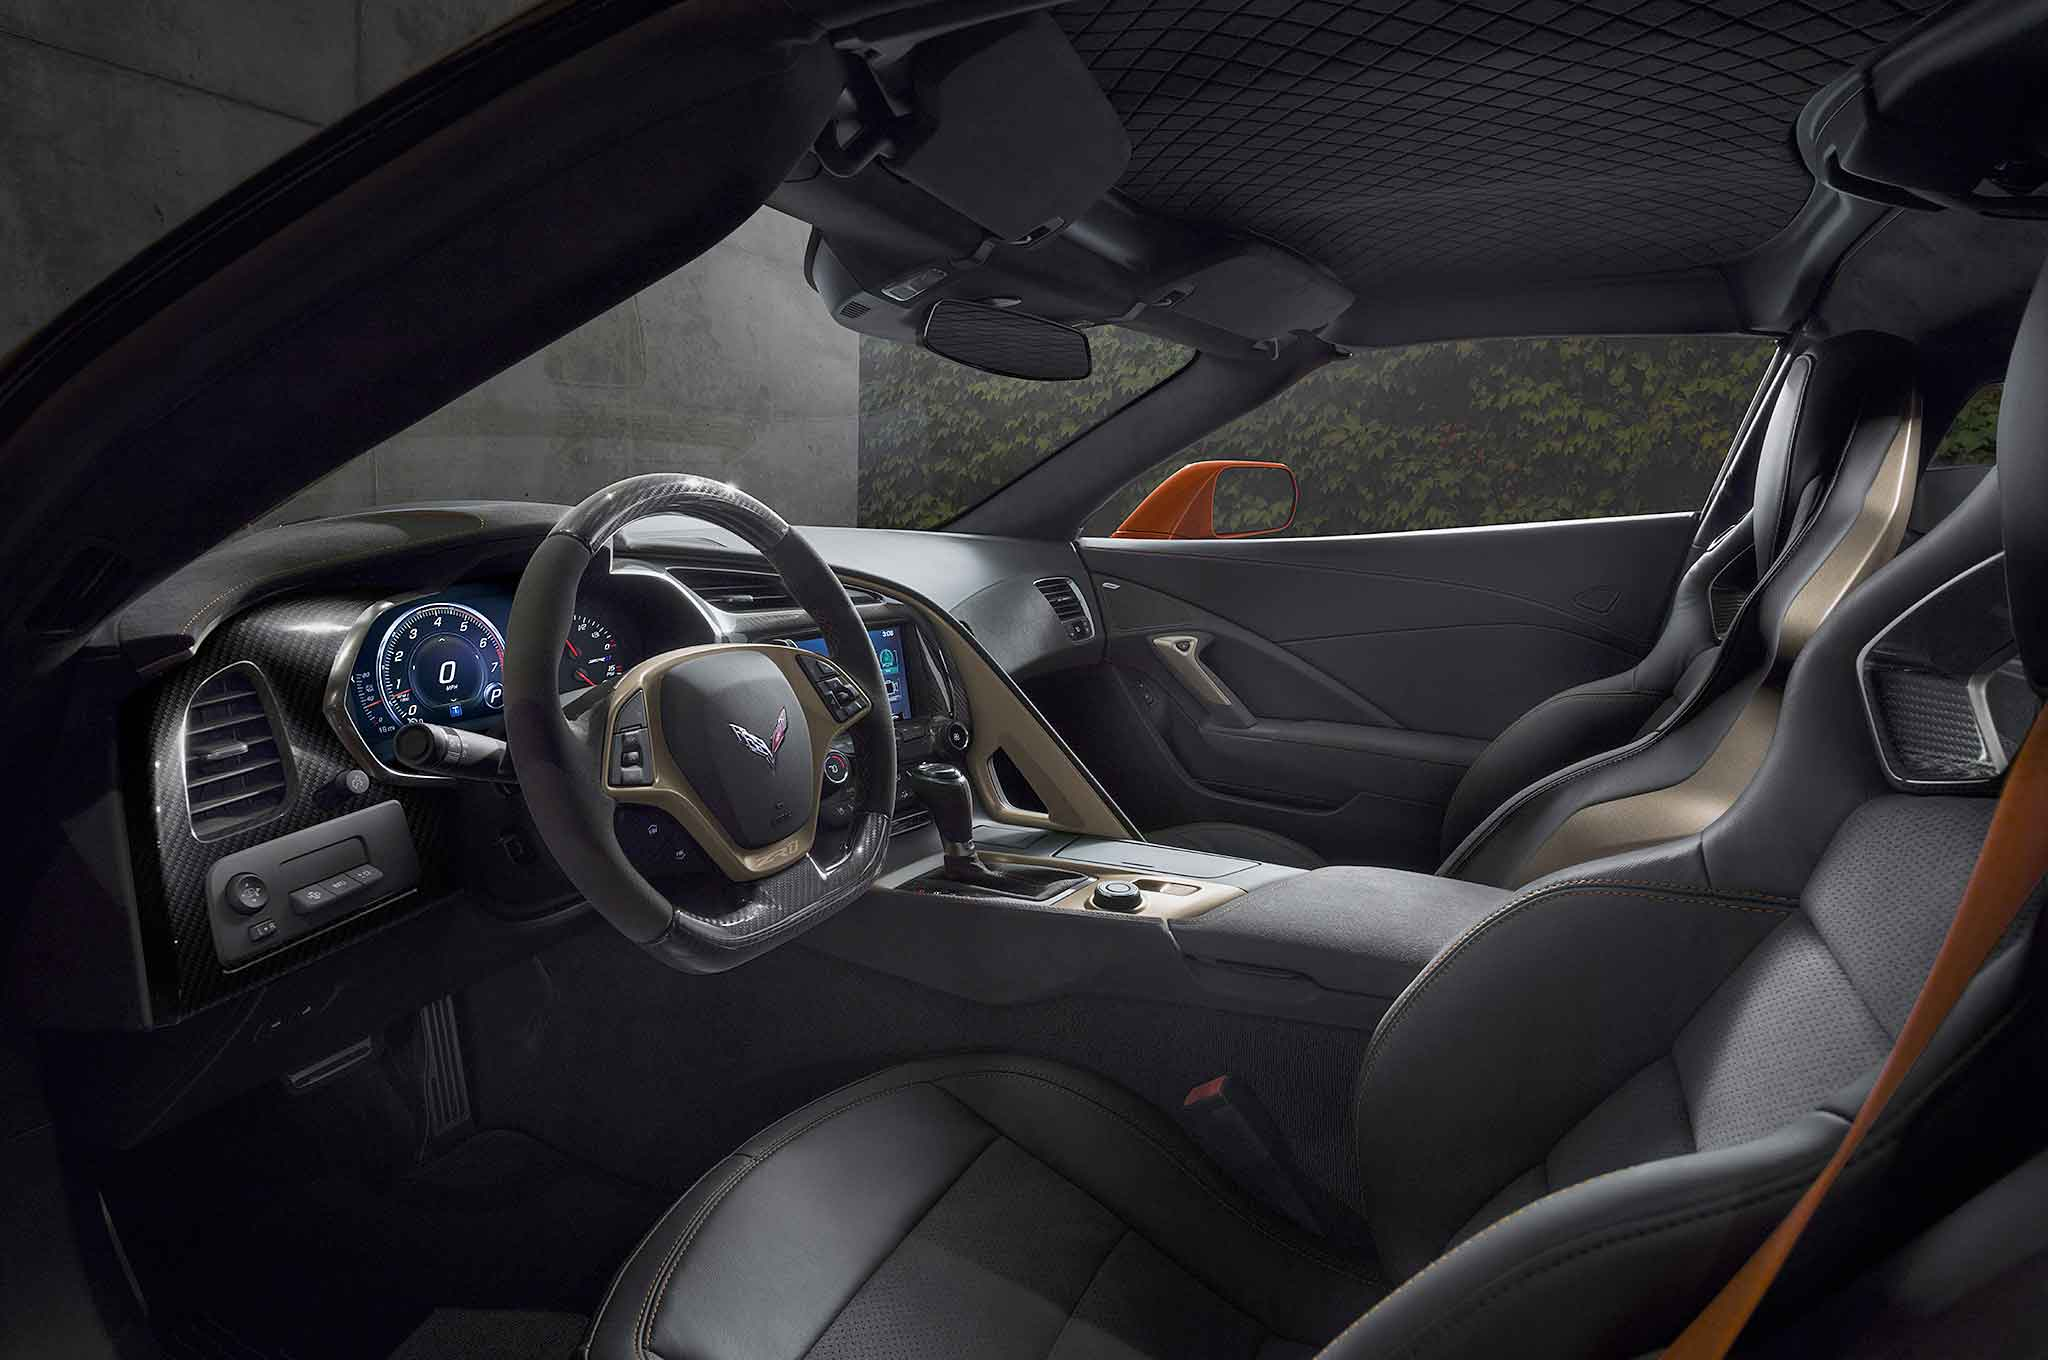 2019 chevrolet corvette ZR1 interior sebring orange